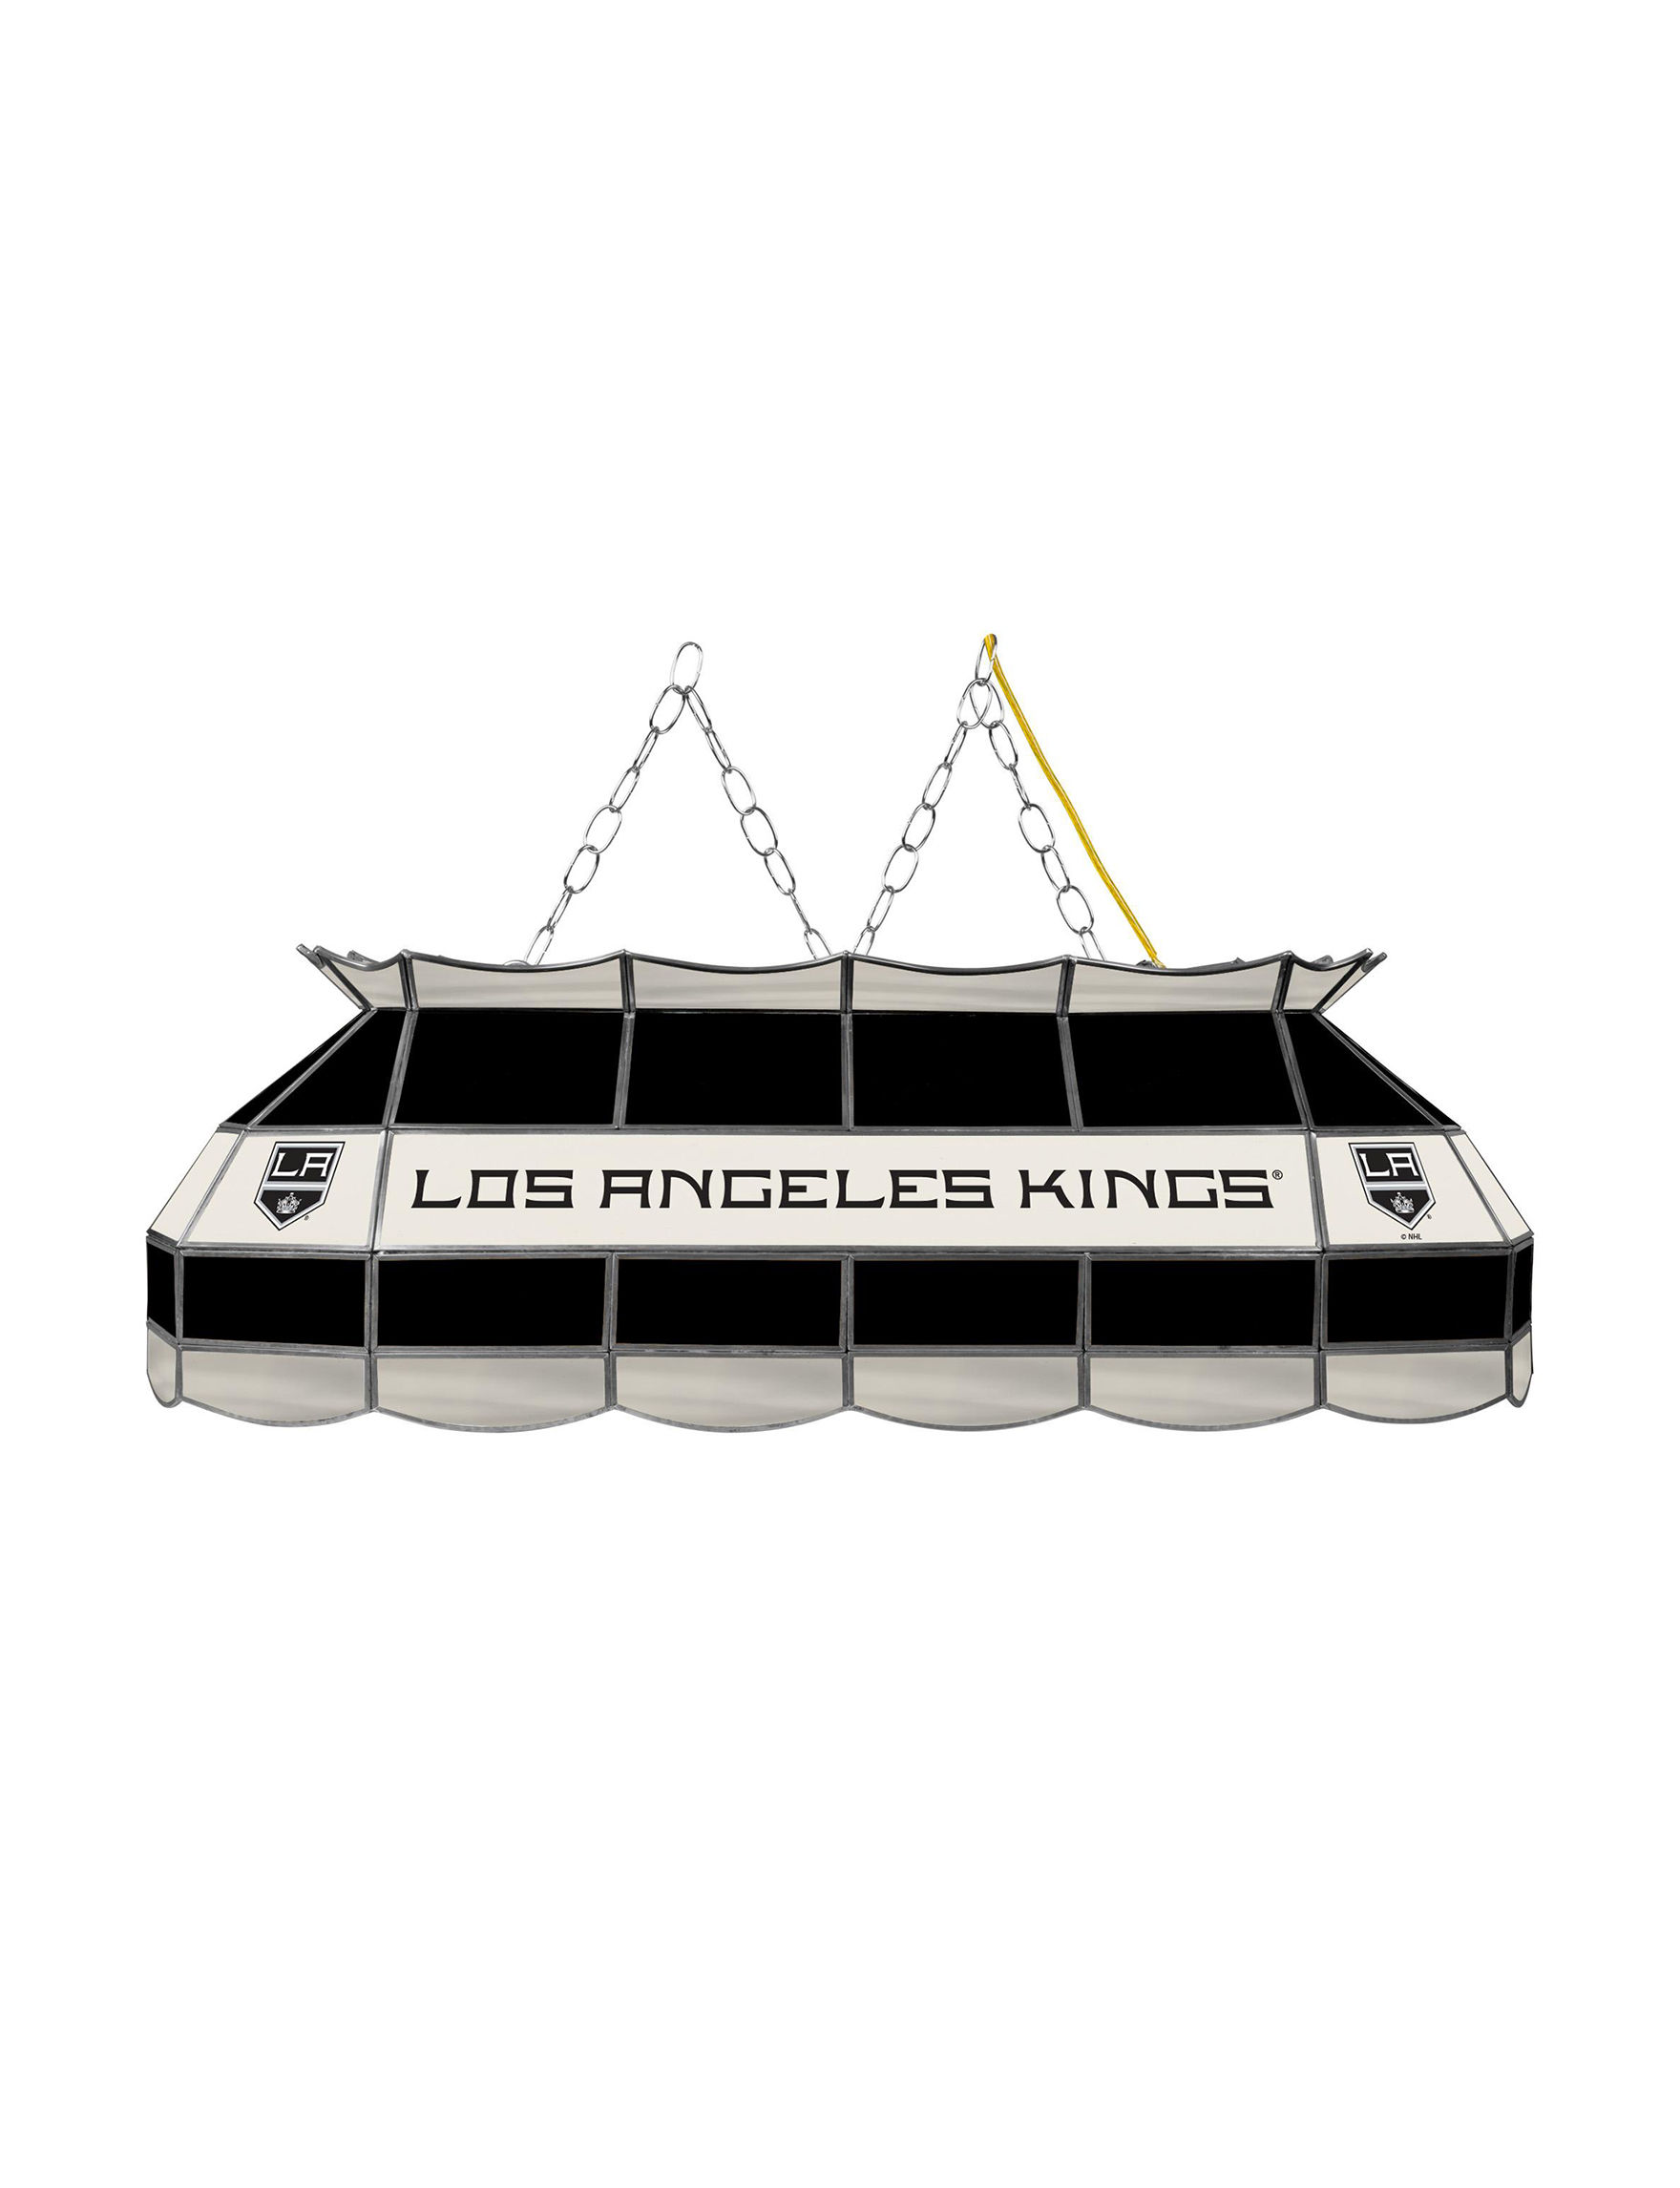 NHL Black / Silver / White Chandeliers Table Lamps Lighting & Lamps NHL